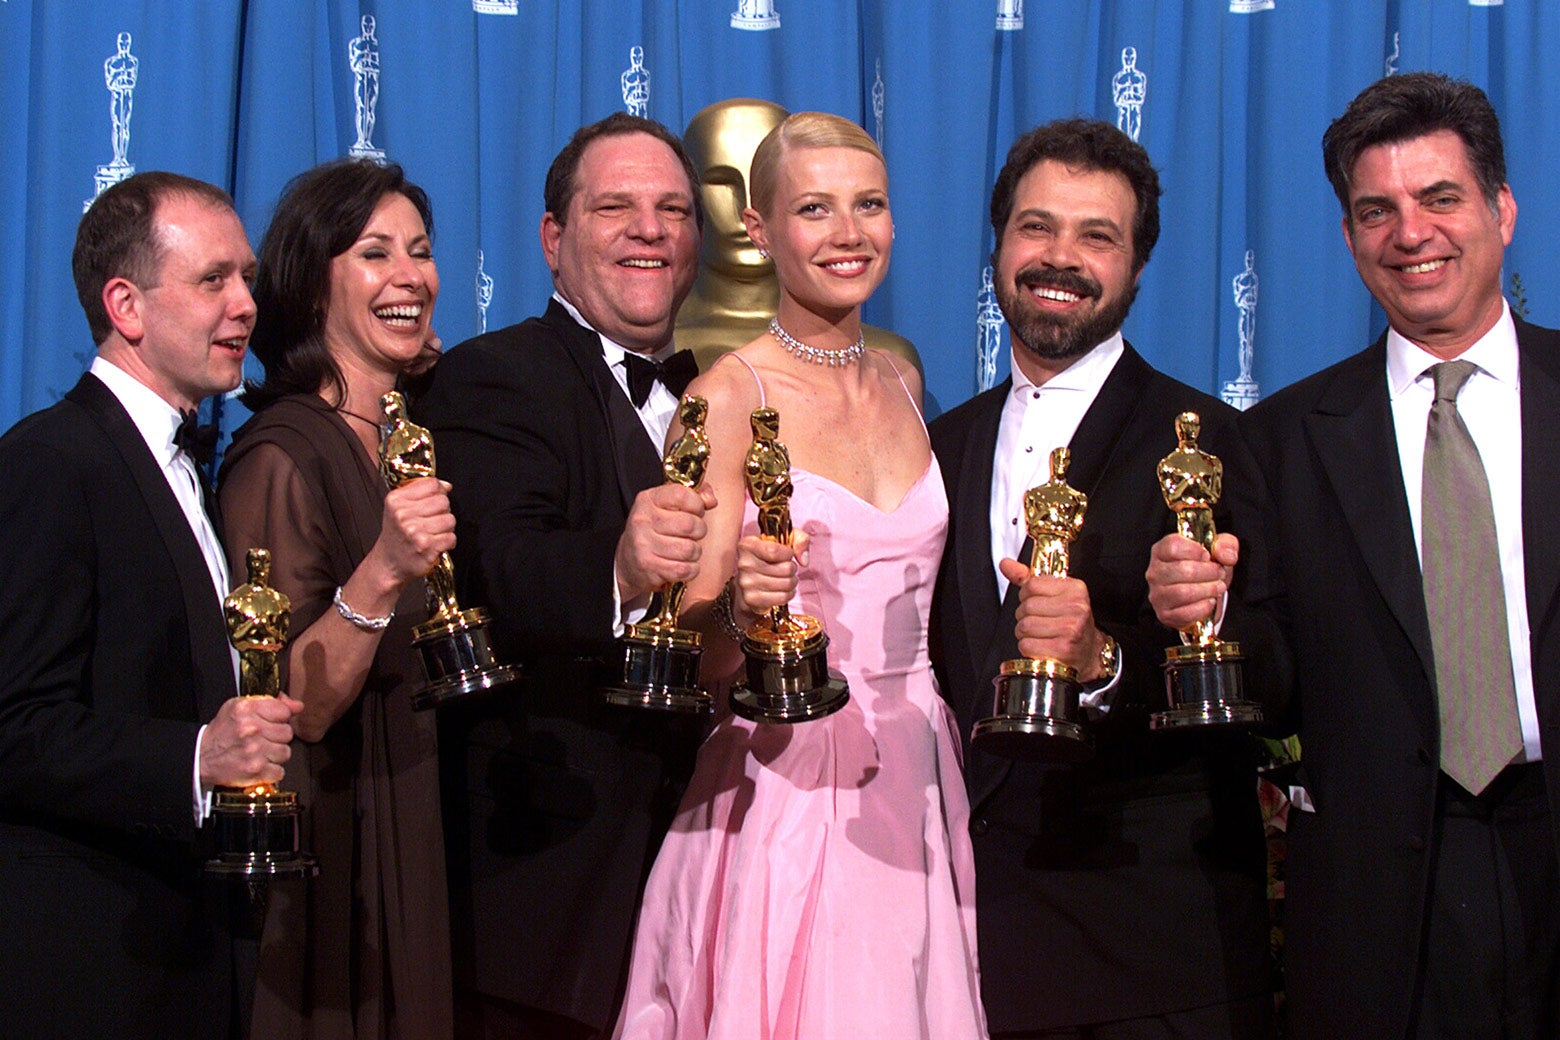 Shakespeare in Love Best Actress winner Gwyneth Paltrow (center) is joined by Harvey Weinstein and others backstage as they celebrated their win of Best Picture at the Academy Awards in Hollywood, California, on March 21, 1999